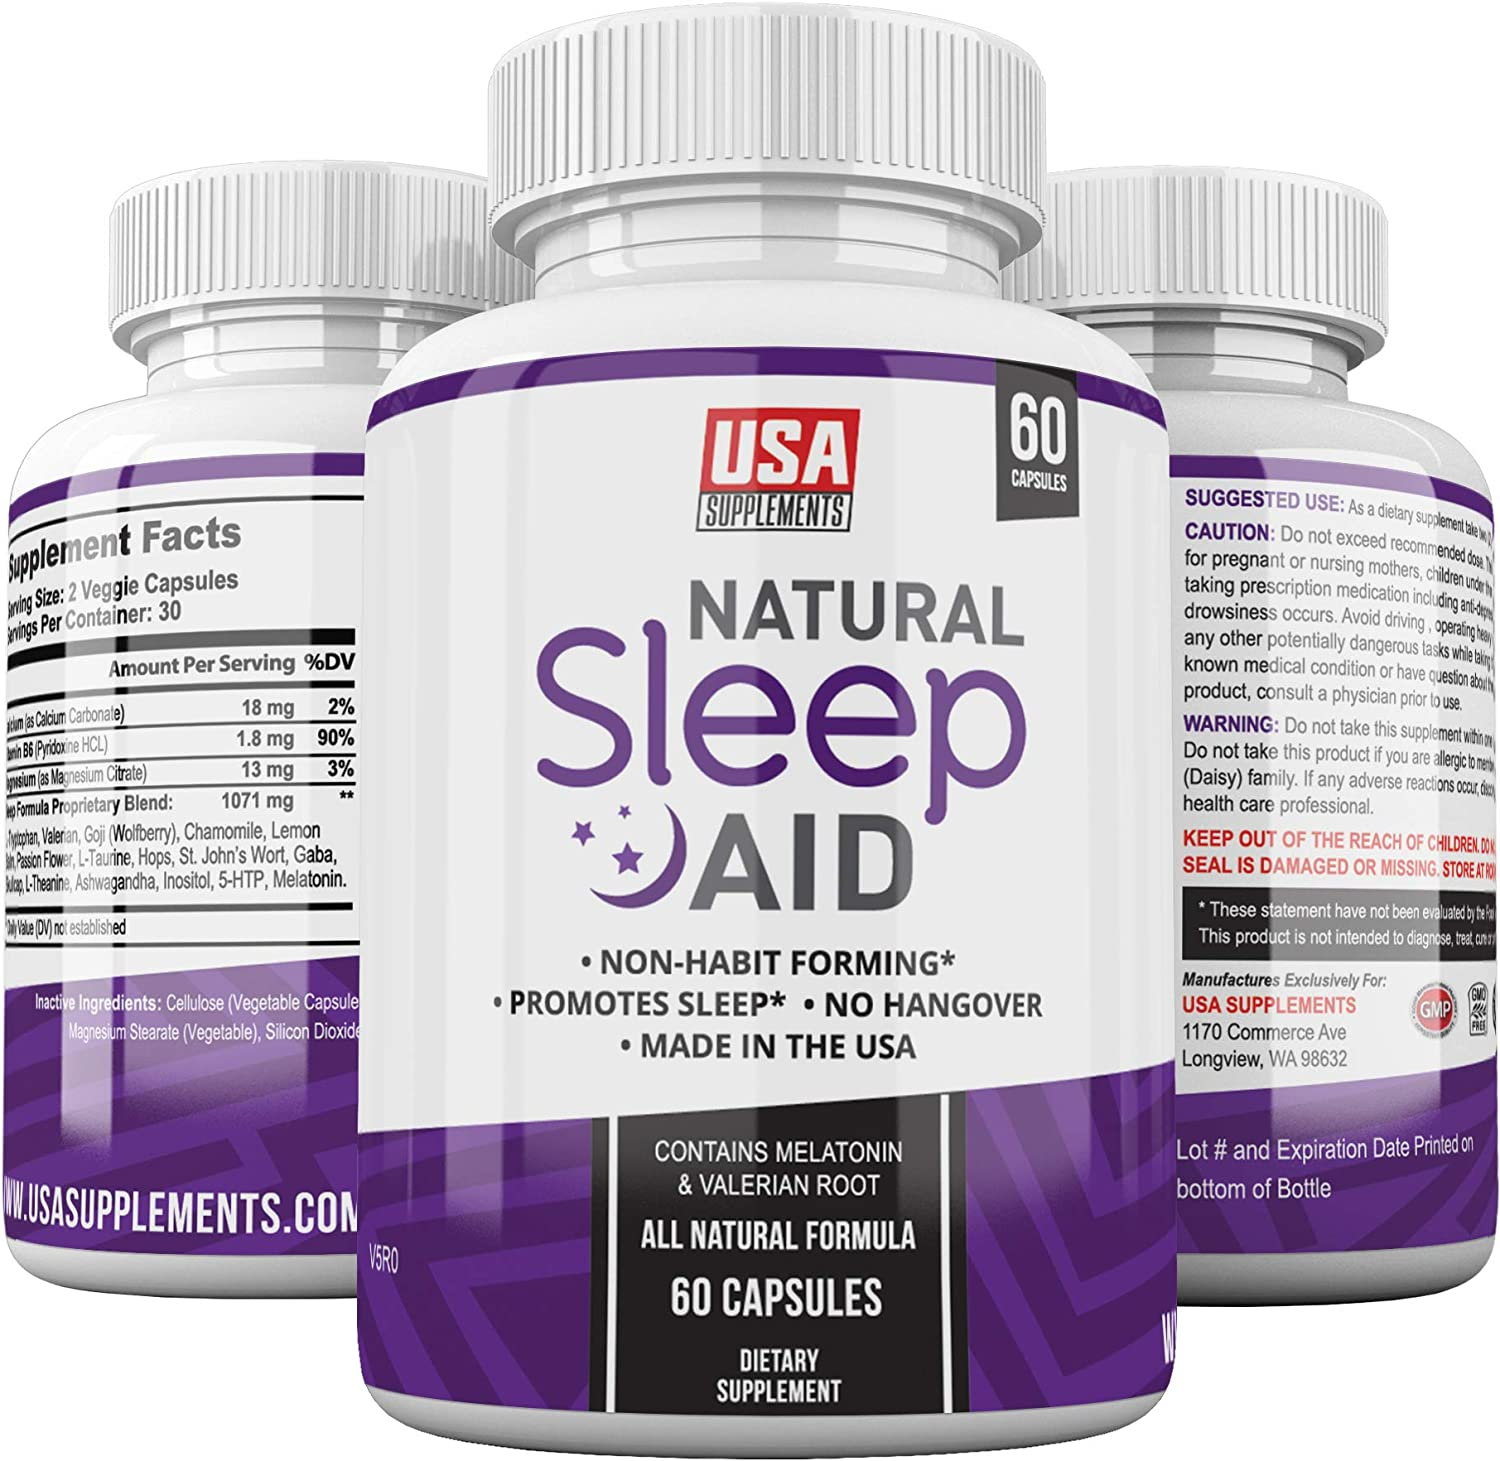 Natural Sleep Aid Pills - for Adults Extra Strength | Herbal Melatonin, Chamomile & Valerian Root Capsules | Adrenal Fatigue Support | Fast Stress, Anxiety & Insomnia Relief by USA Supplements